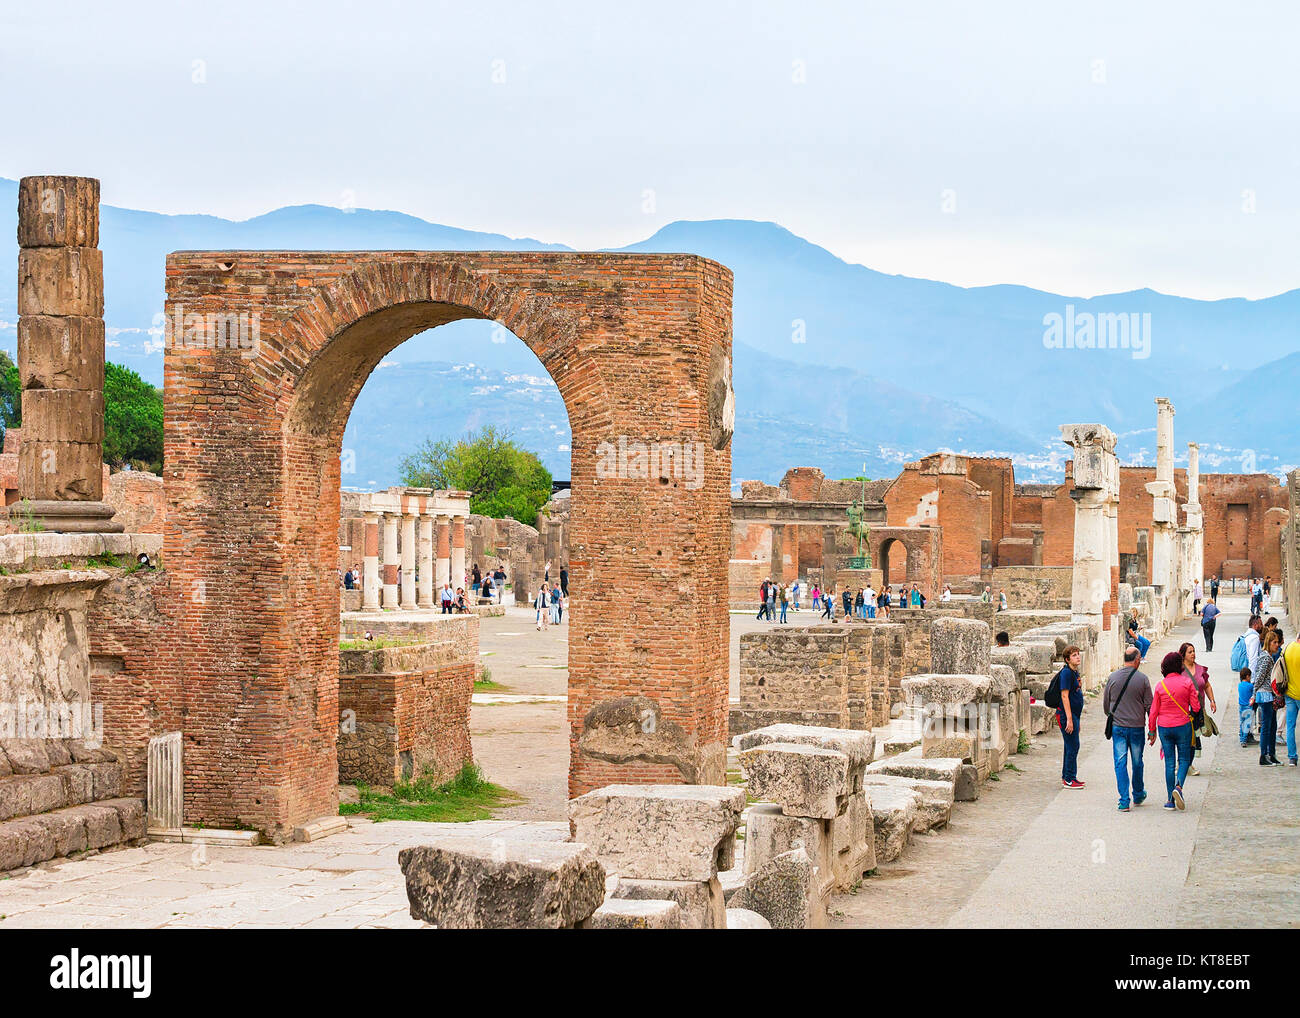 Pompeii Main Square Stock Photos & Pompeii Main Square ...